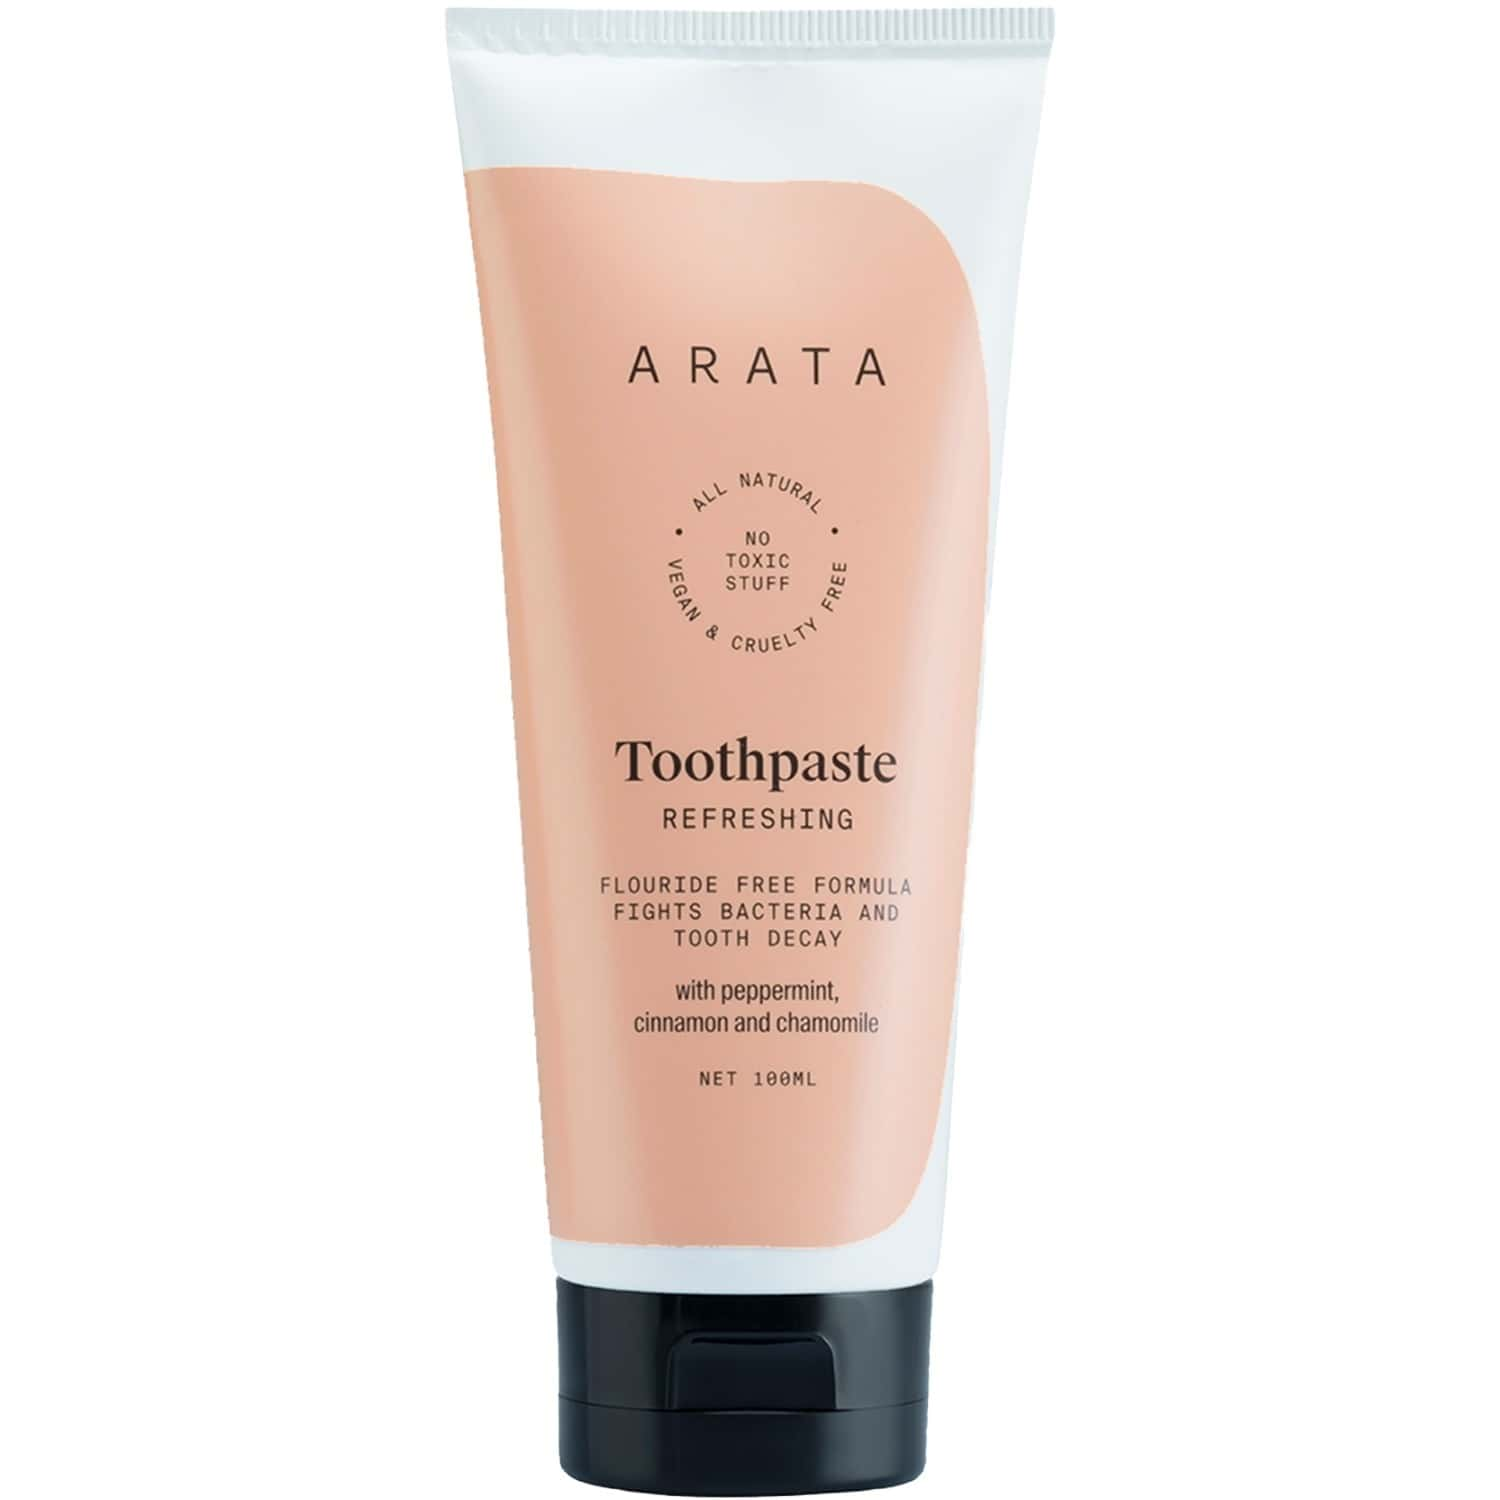 Arata Natural Refreshing Toothpaste With Peppermint, Cinnamon & Chamomile   All-natural, Vegan & Cruelty-free   Fluoride-free Formula Fights Bacteria & Tooth Decay - (100 Ml)